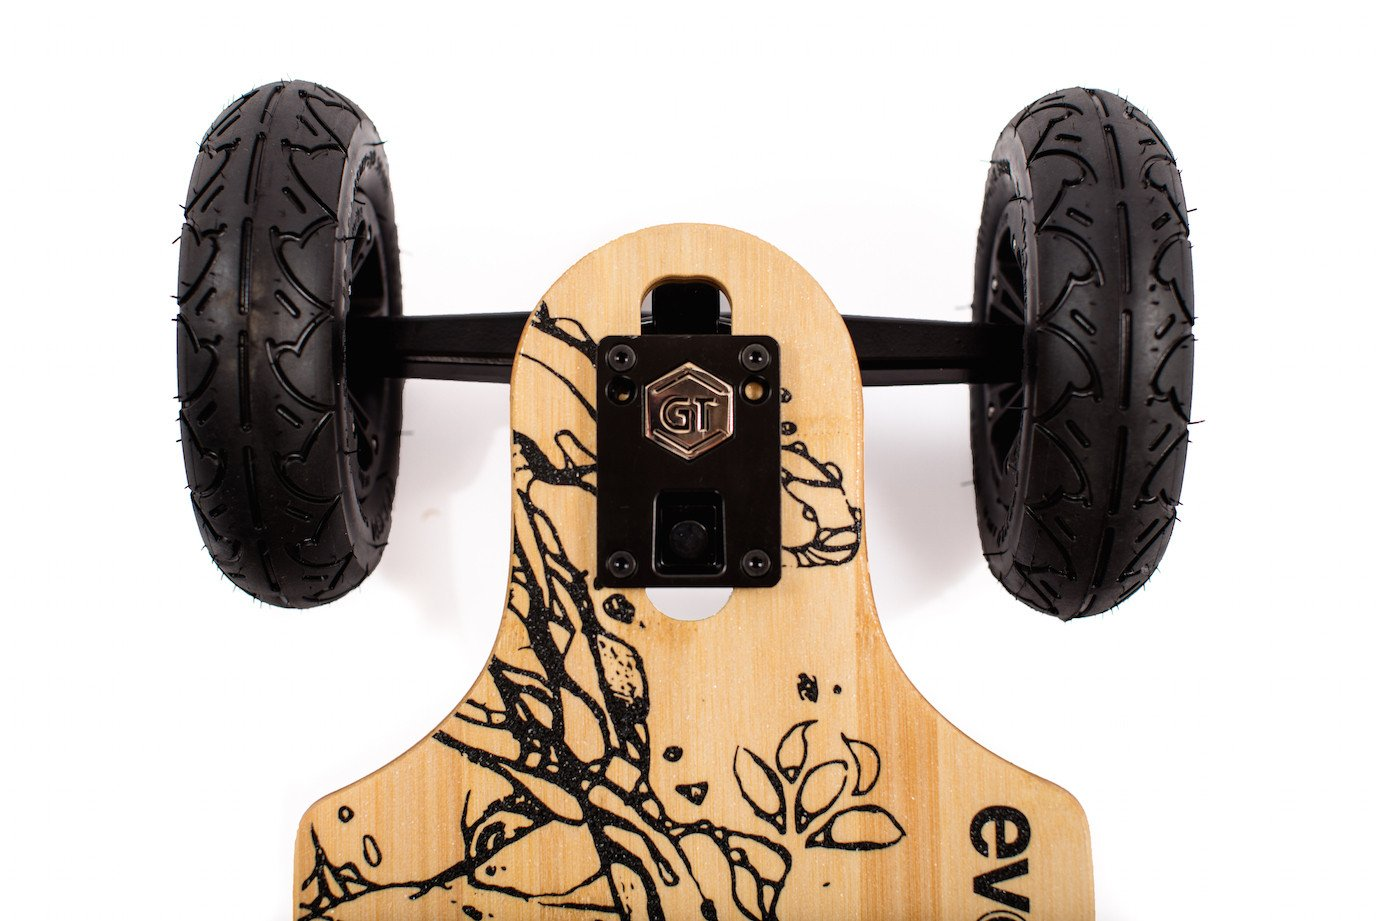 GT Carbon Series Street Electric Skateboard  Evolve Skateboards New Zealand